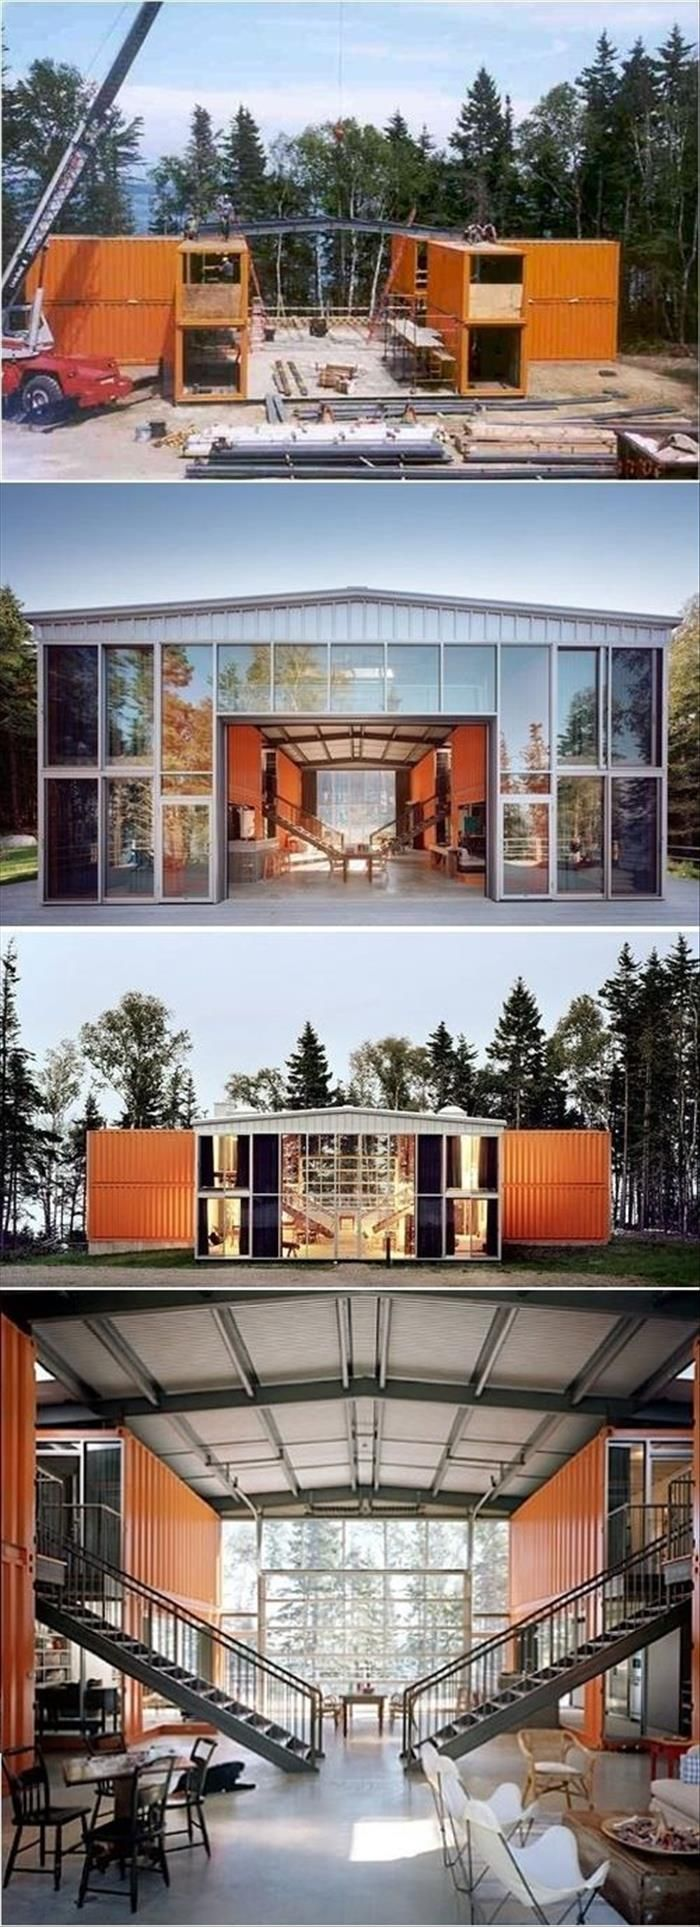 best 25+ sea container homes ideas on pinterest | container homes